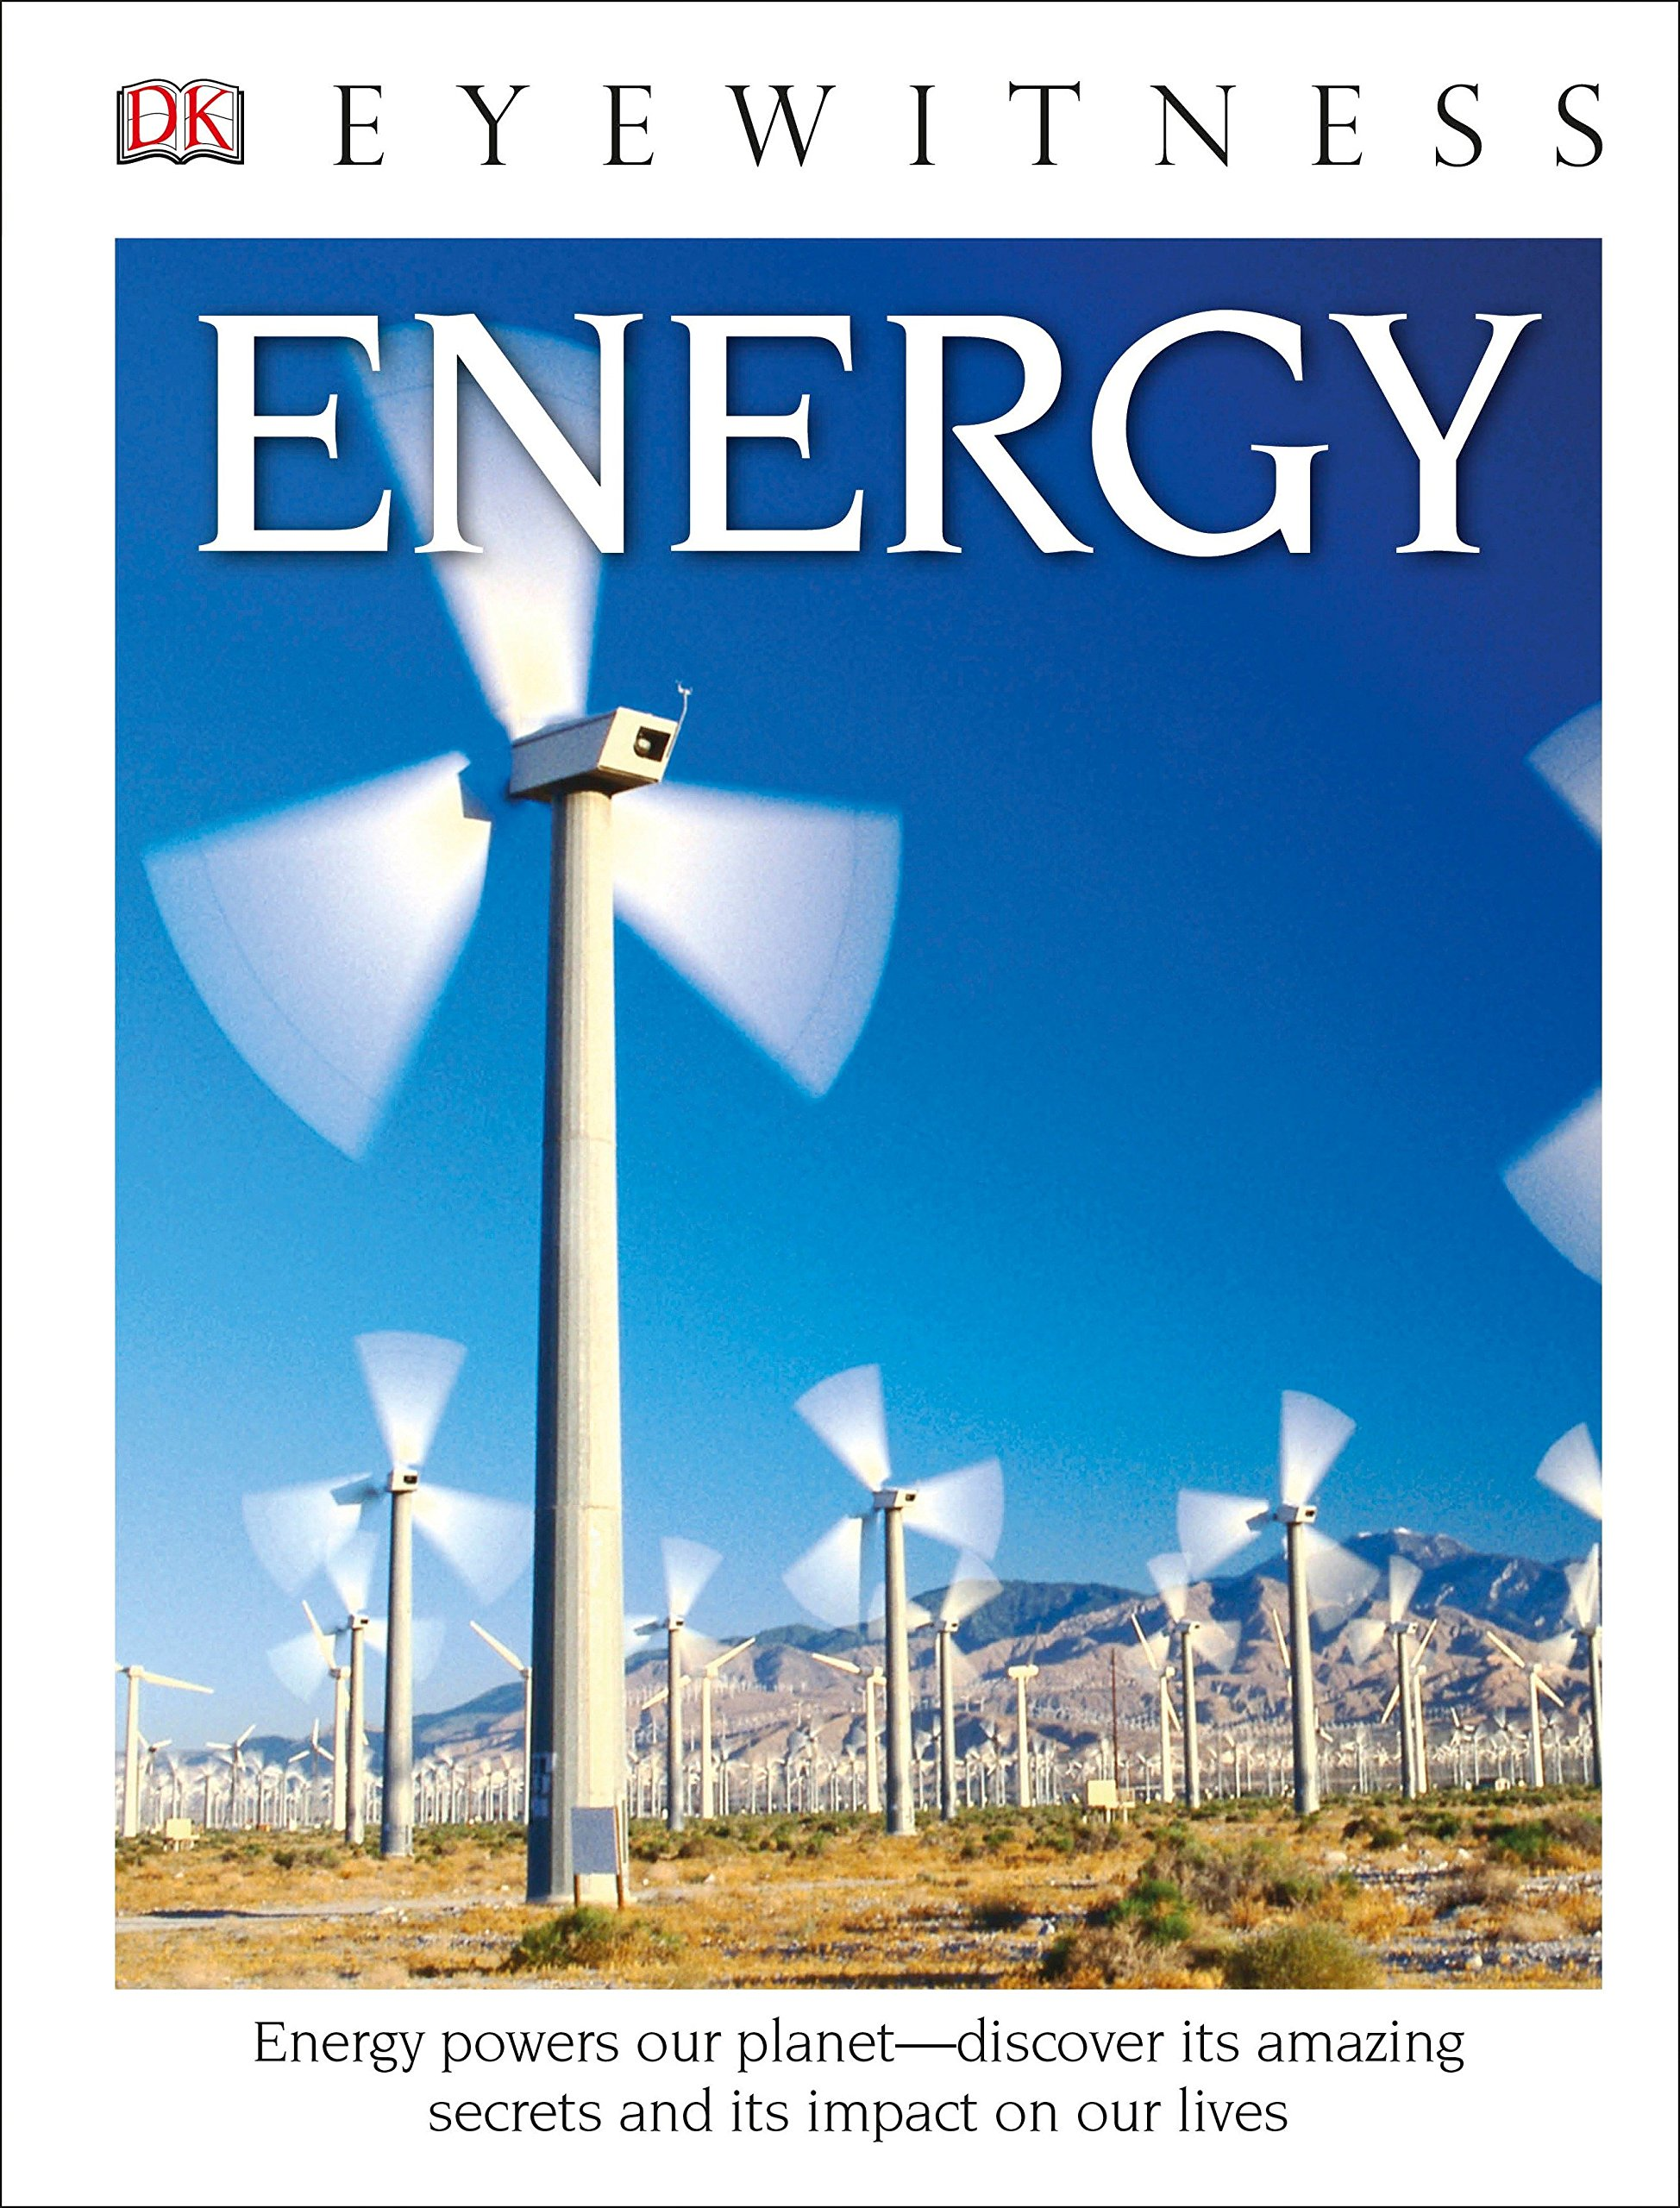 DK Eyewitness Books: Energy: Energy powers our planet discover its amazing secrets and its impact on our live ebook